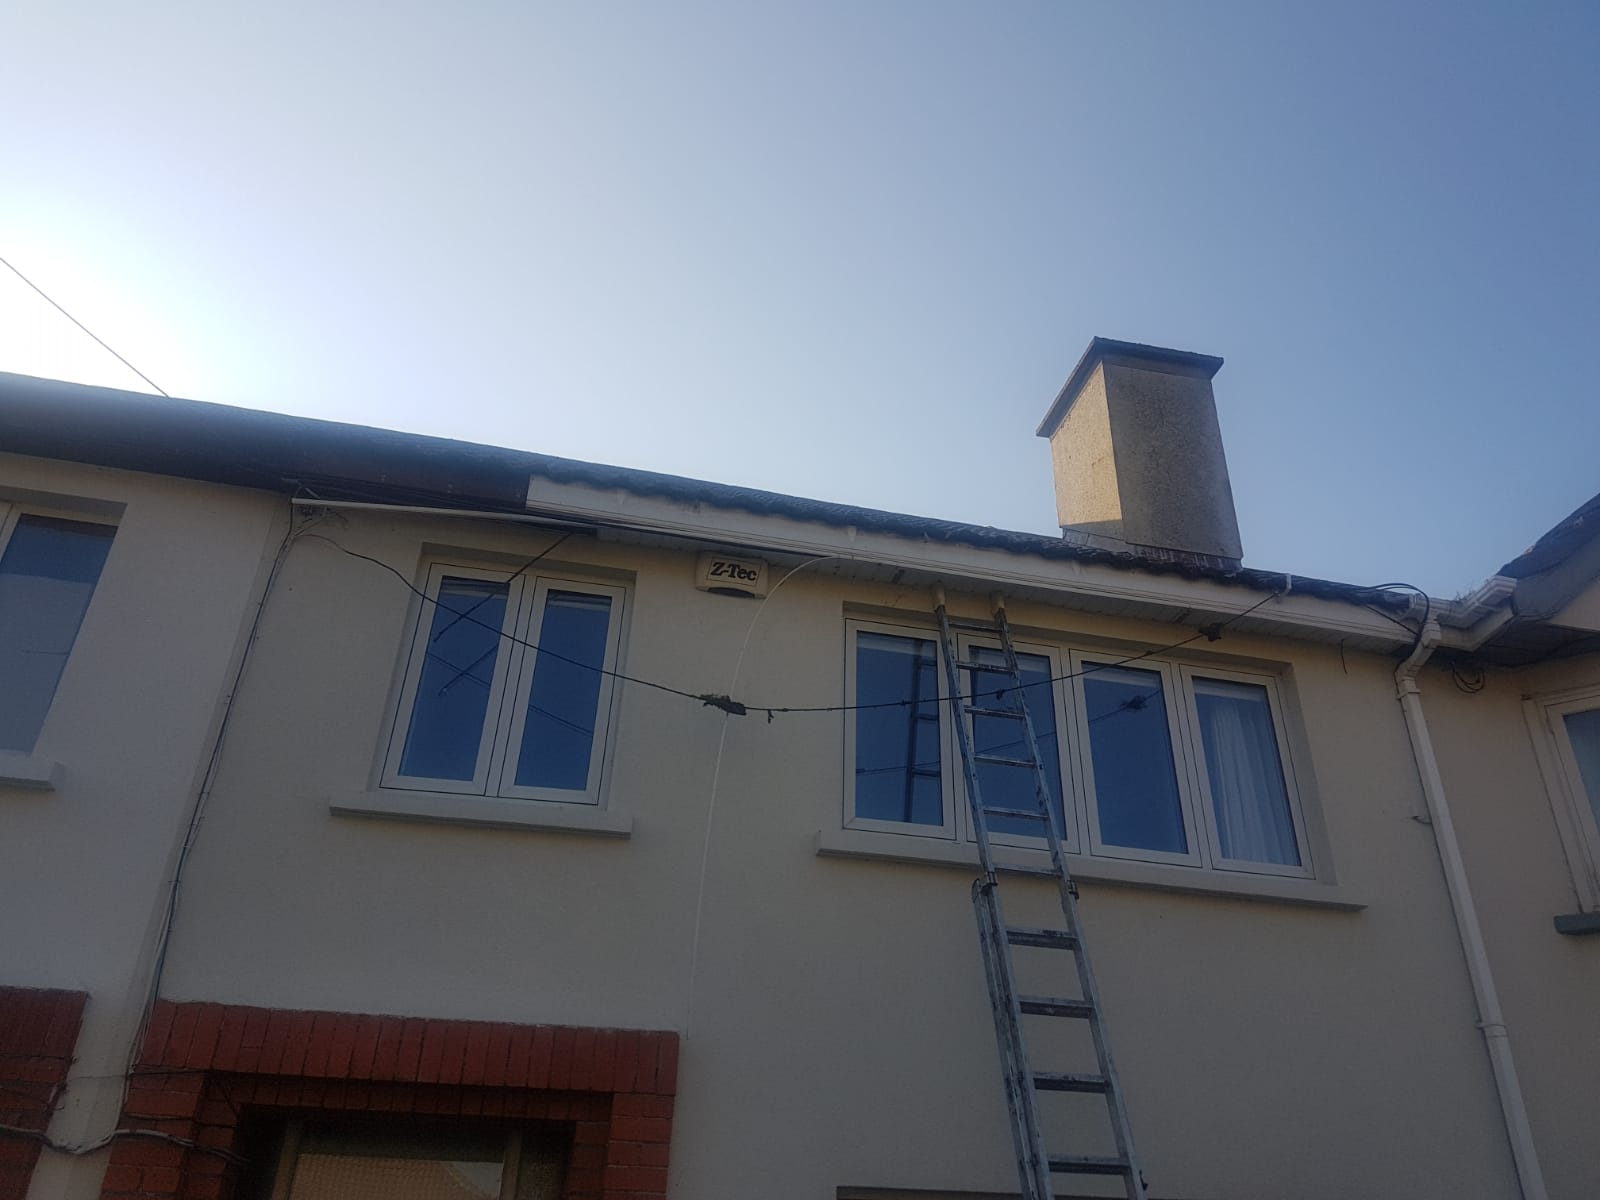 Guttering Repairs in Kilteel, Co. Kildare